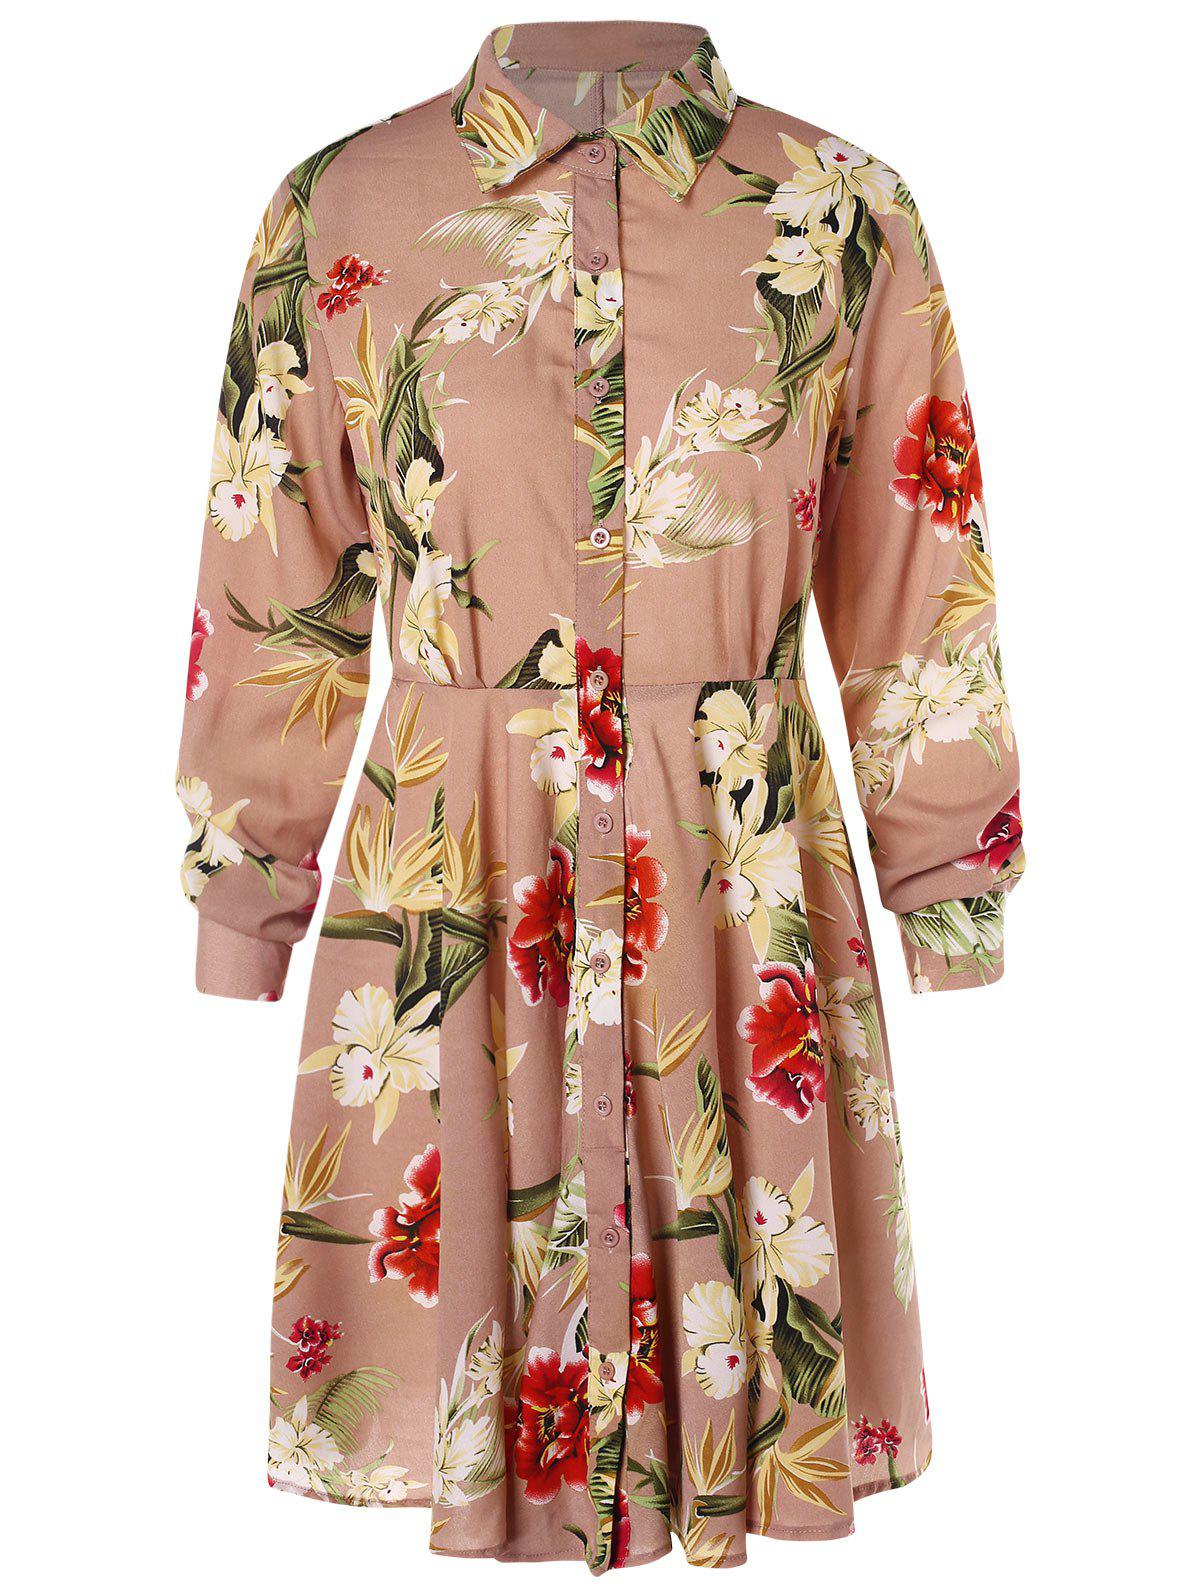 Floral Print Long Sleeve Shirt Dress - KHAKI ROSE L